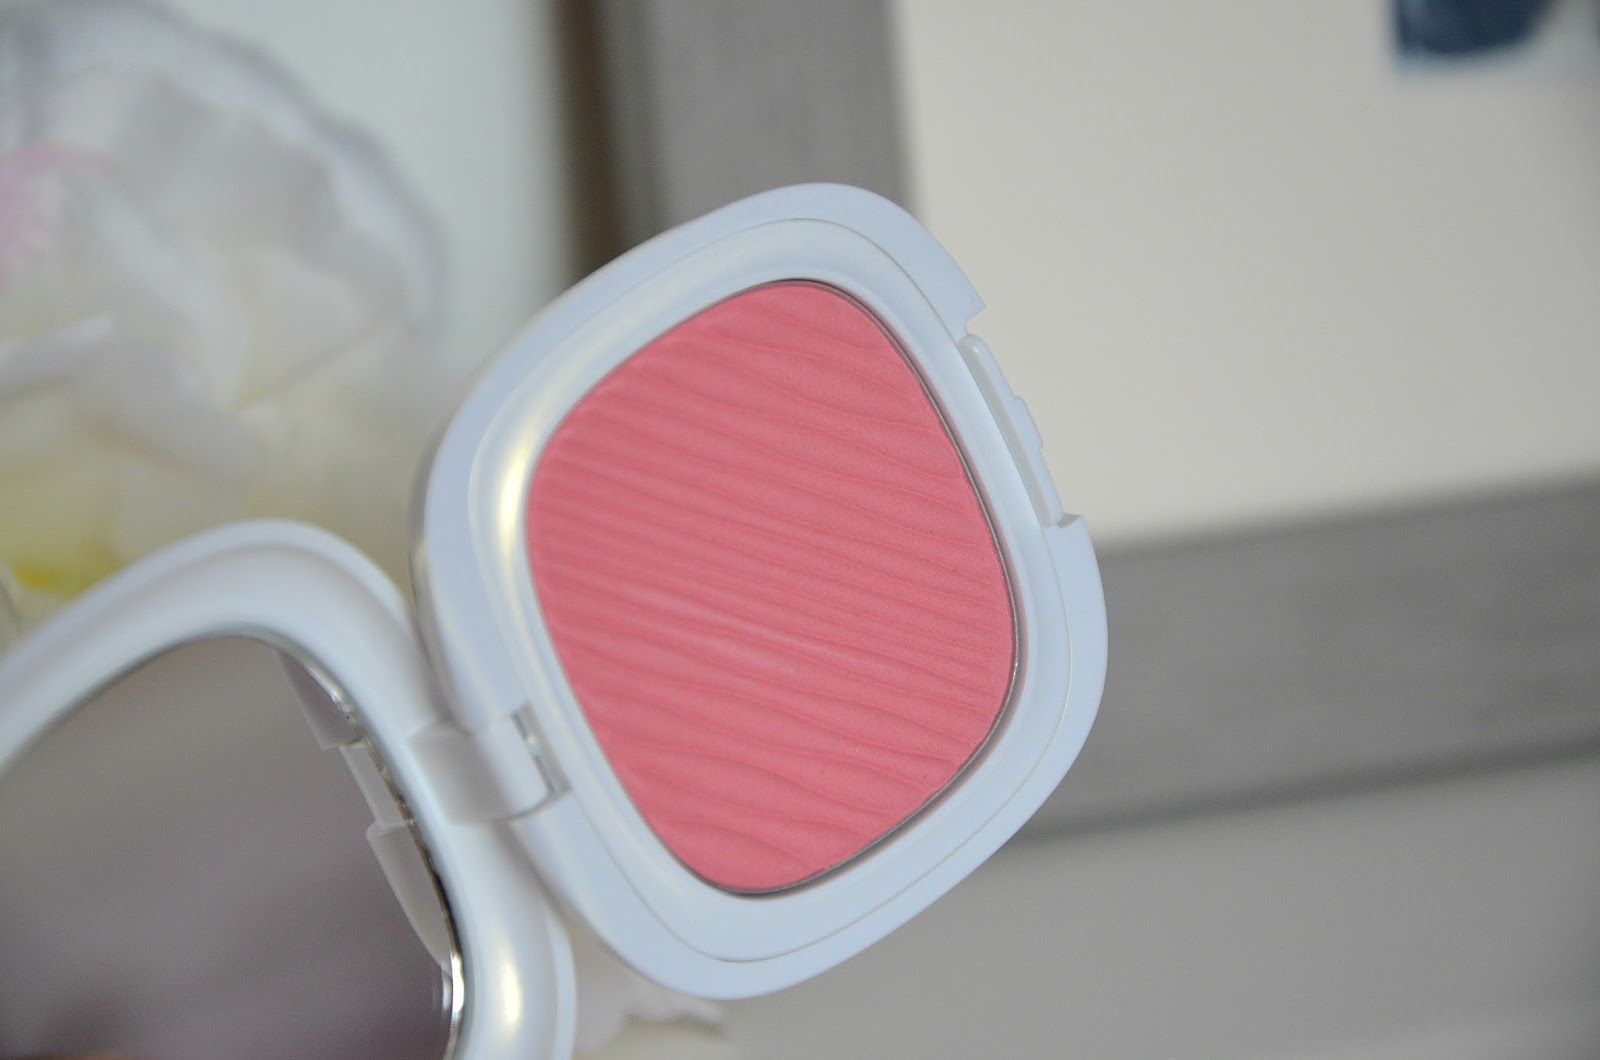 02 breathtaking azalea blush collection Spring 2.0 kiko